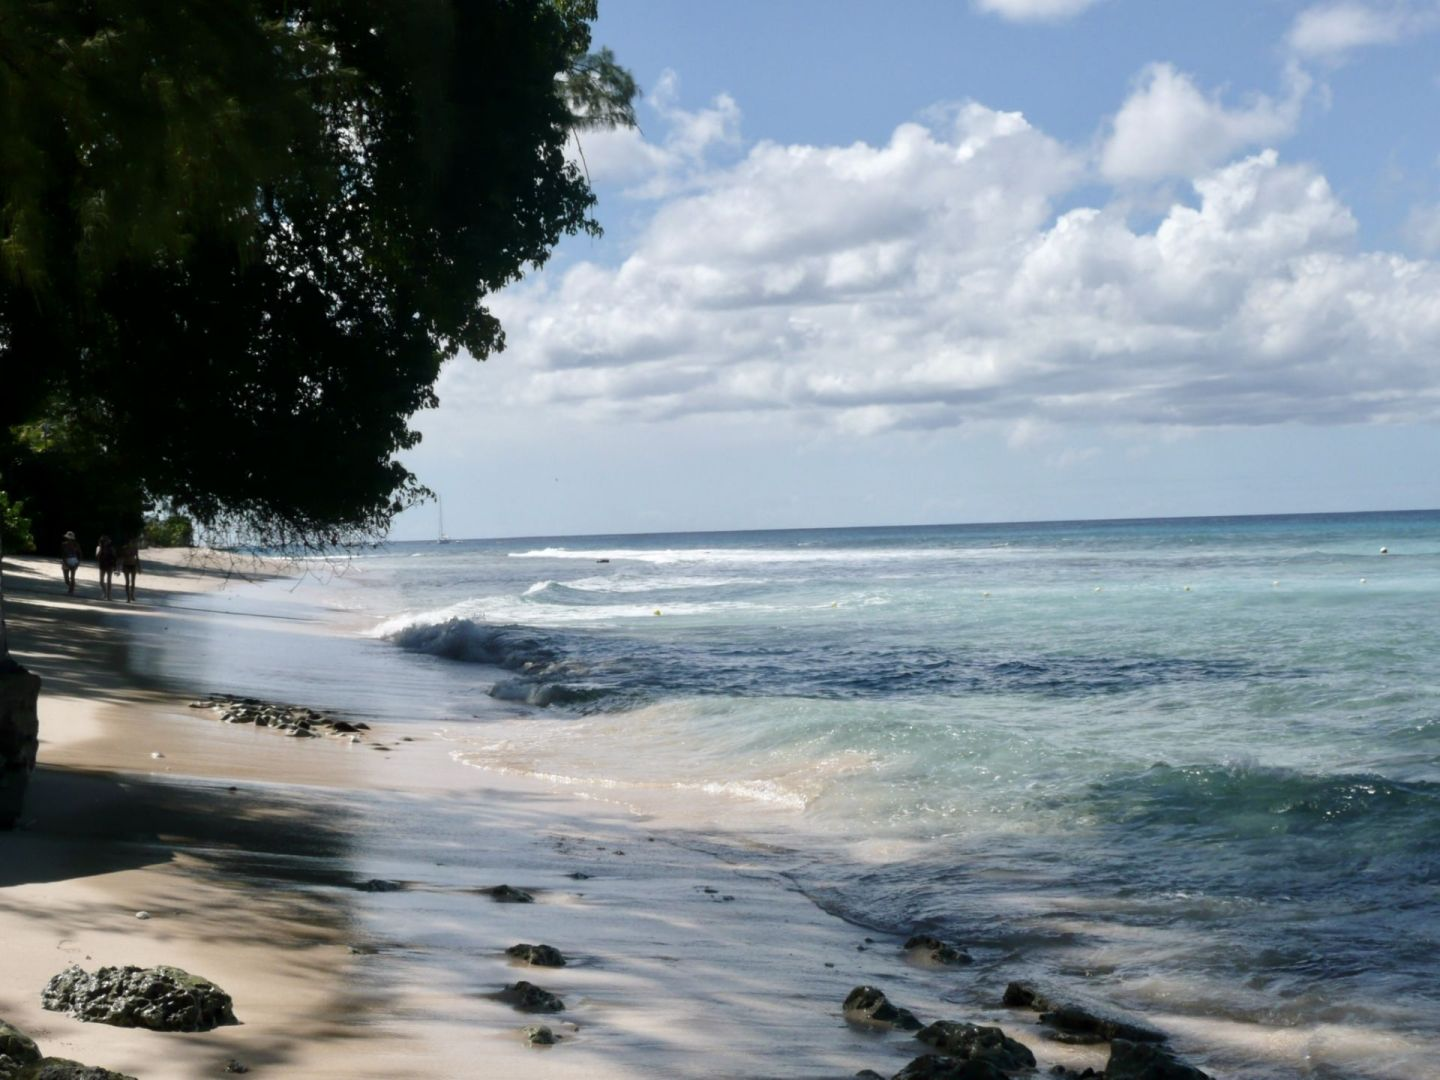 A-Z Barbados Travel Guide – what to see and do in Barbados